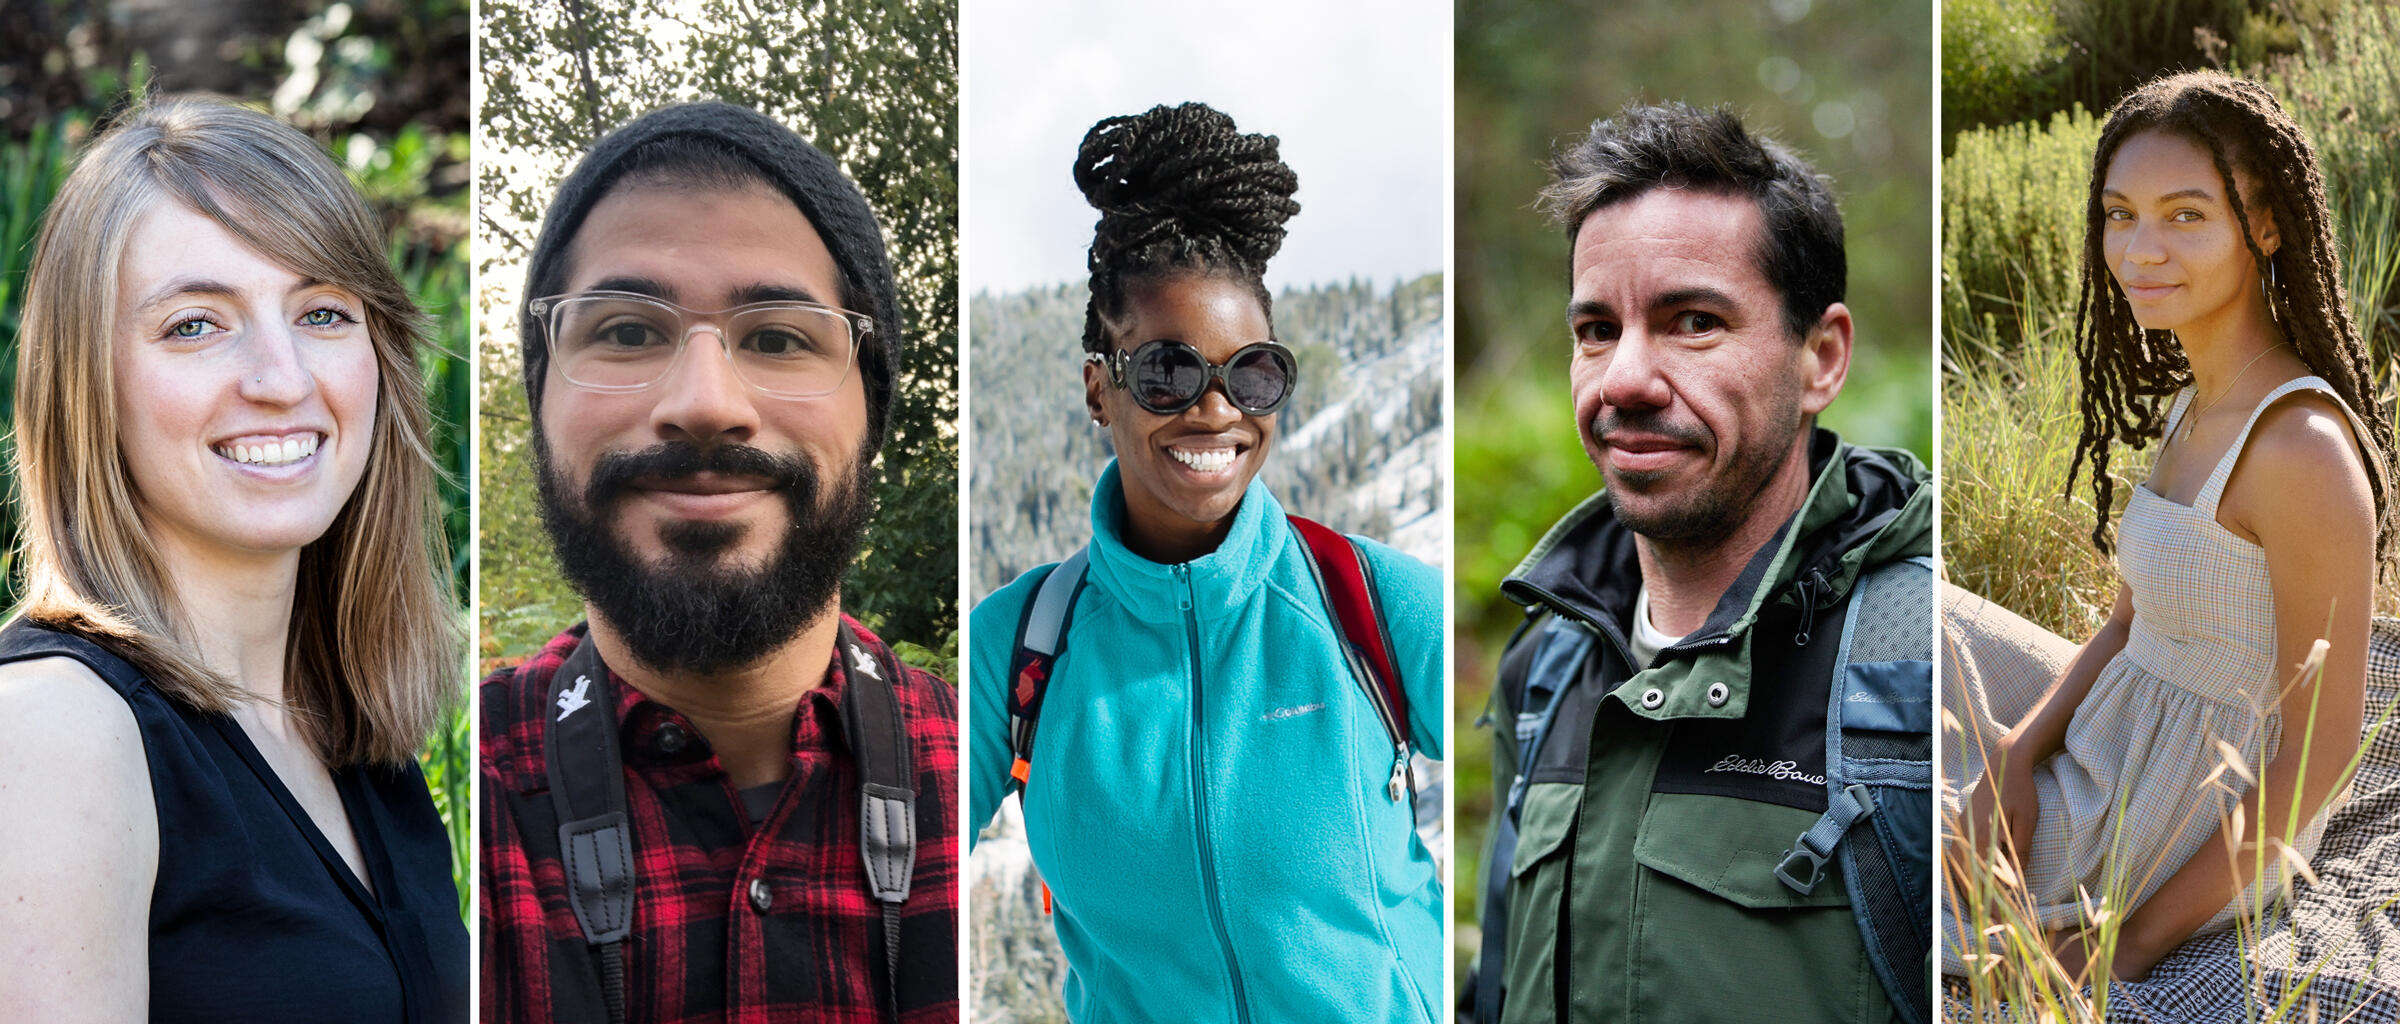 From left: Ava Holliday, Sebastian Moreno, Nailah Blades, Perry Cohen, and Leah Thomas. Photos, from left: Nancy Holliday Photography, Sebastian Moreno, Nicole Lennox, Courtesy of Eddie Bauer, Courtesy of Christy Dawn and James Branaman